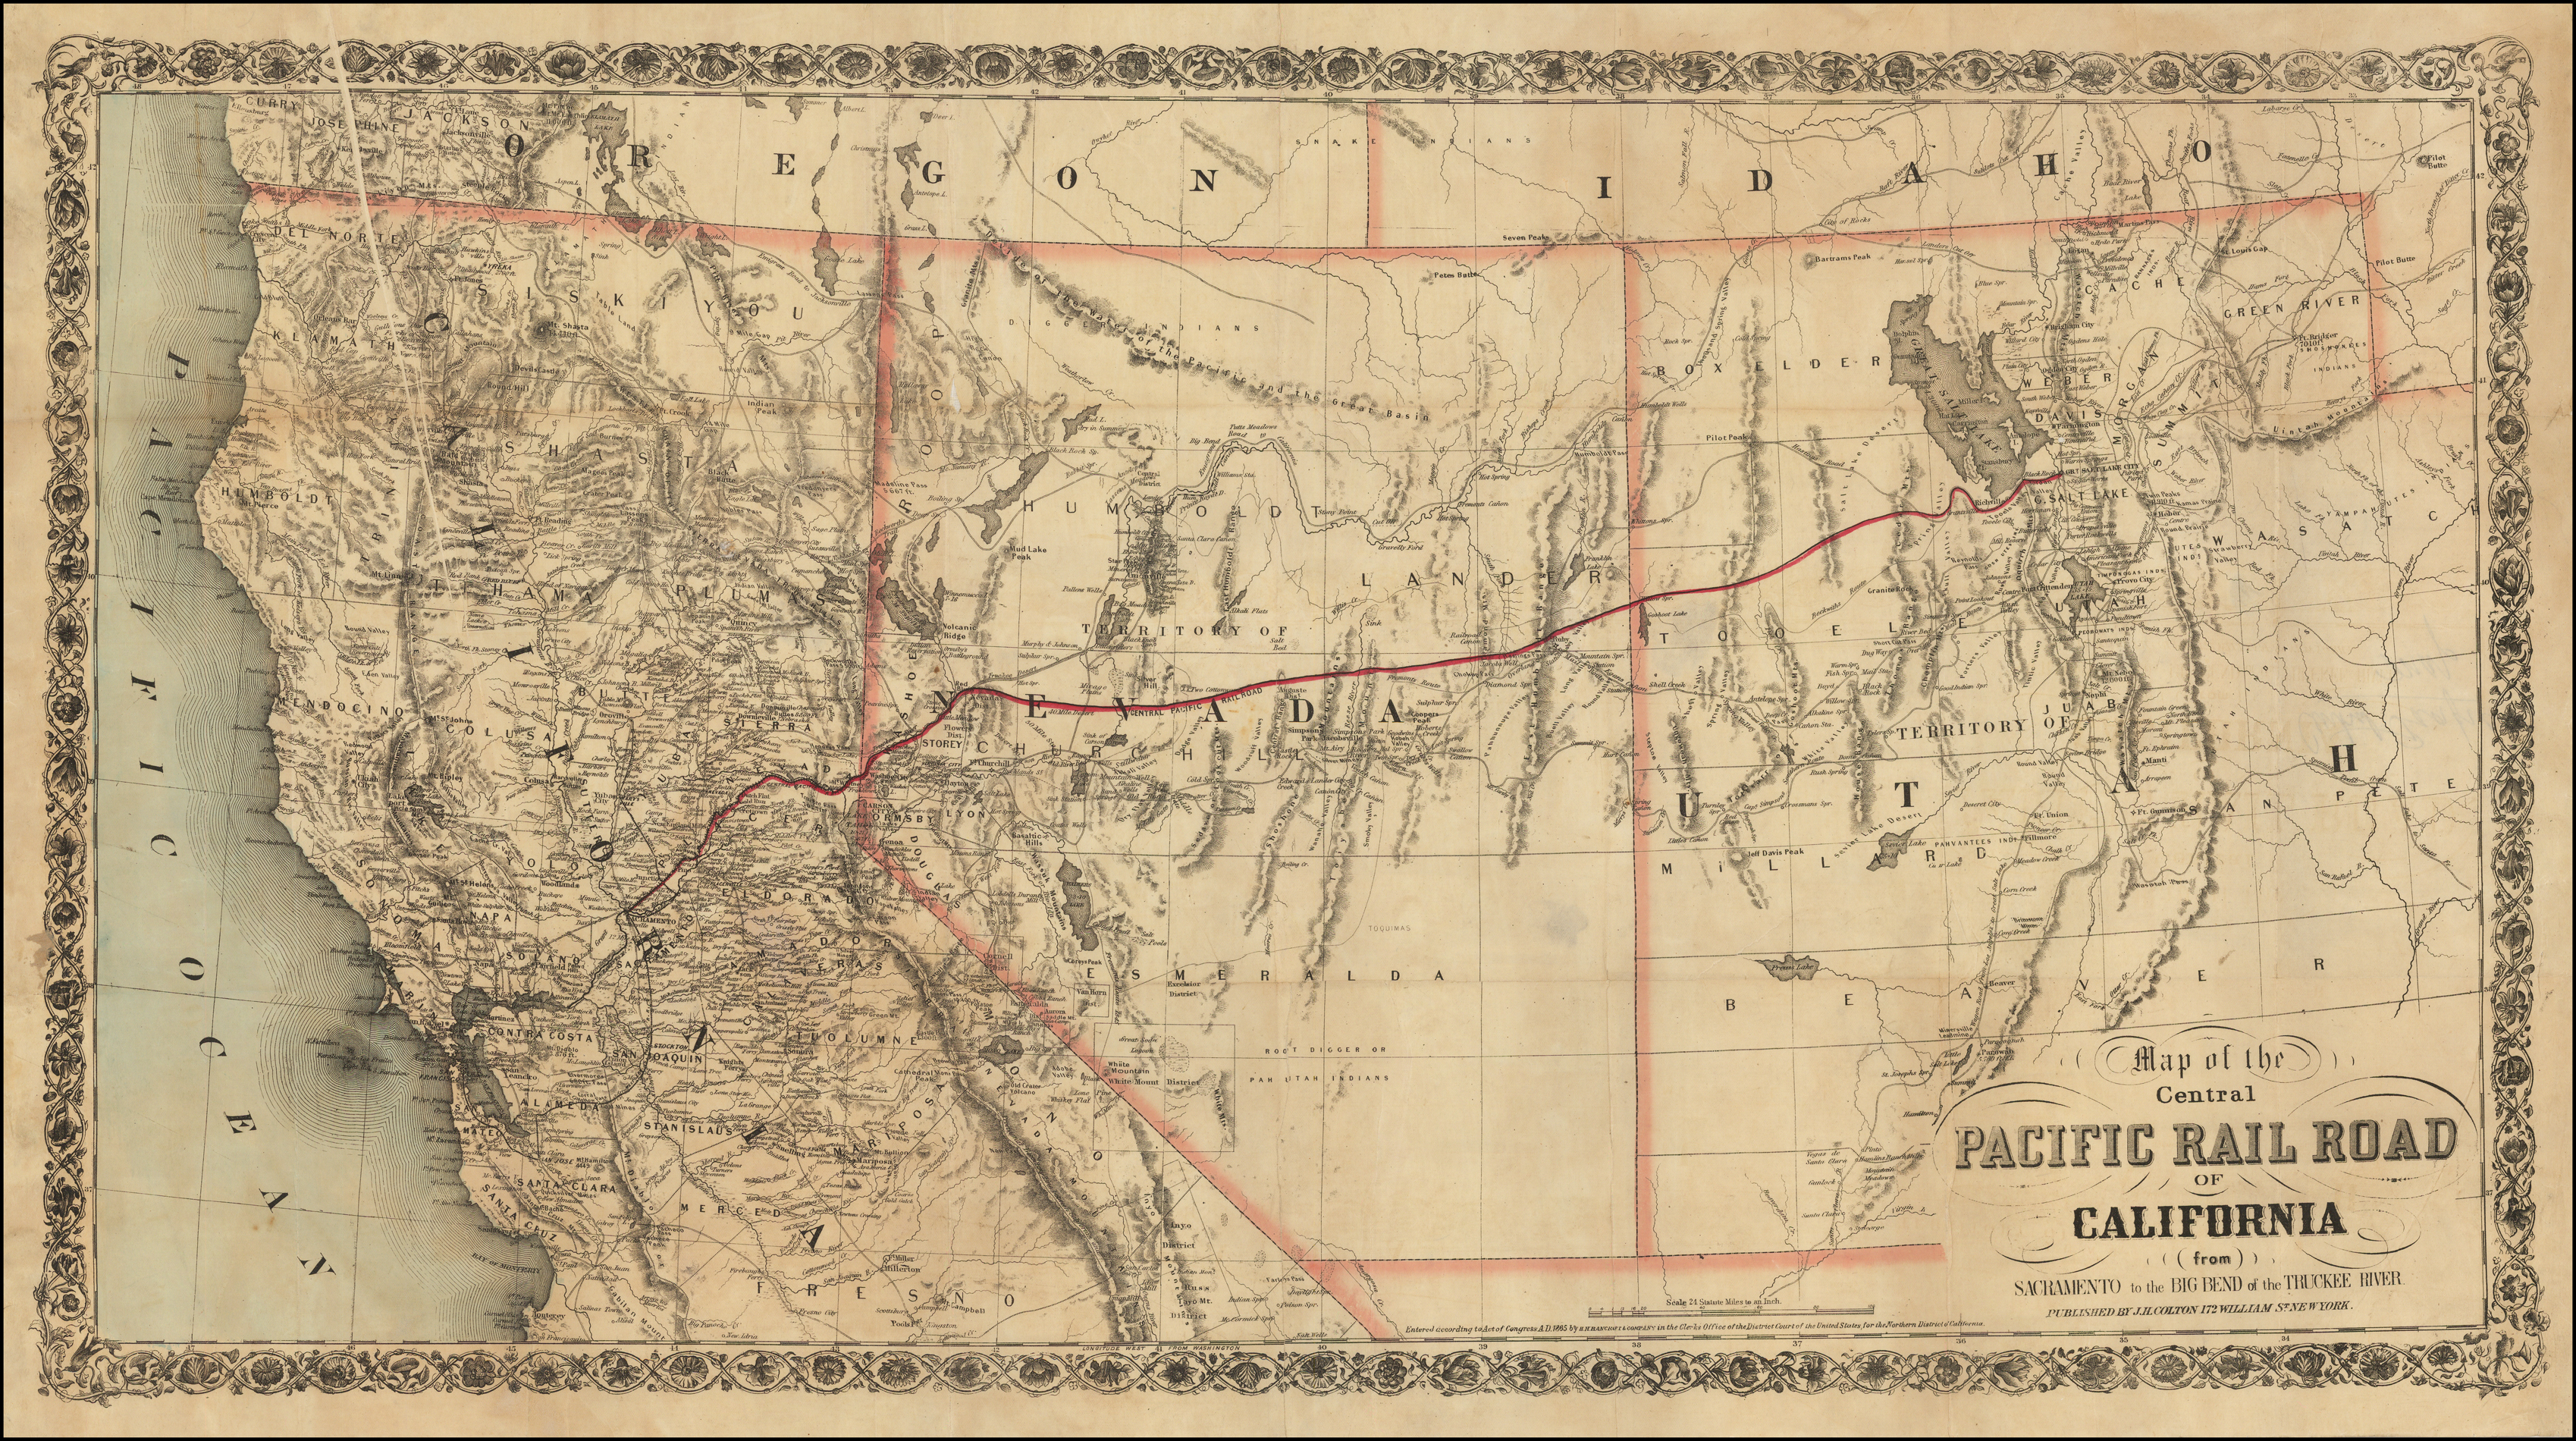 Map of the Central Pacific Rail Road of California (from ... Central Pacific Railroad Map on central pacific leviathan, chesapeake and ohio railway map, los angeles and salt lake railroad, union pacific colorado route map, union pacific railroad, chicago rapid transit map, northern pacific railway, western railroads map, modoc northern railroad, denver and rio grande western railroad, uintah railway, central pacific jupiter, comstock lode, canadian national railway map, leland stanford, maine central railroad map, sego, utah, michigan central railroad map, jay gould, northern pacific railway map, central pacific train, union pacific system map, northern pacific route map, jersey central railroad map, new york central railroad map, western pacific railroad, golden spike, penn central railroad map, central pacific coast costa rica map, texas central railway map, central illinois map, collis p. huntington, oregon short line railroad, union pacific california map, atchison, topeka and santa fe railway, great western railway of colorado, great northern railway, southern pacific railroad, first transcontinental railroad,